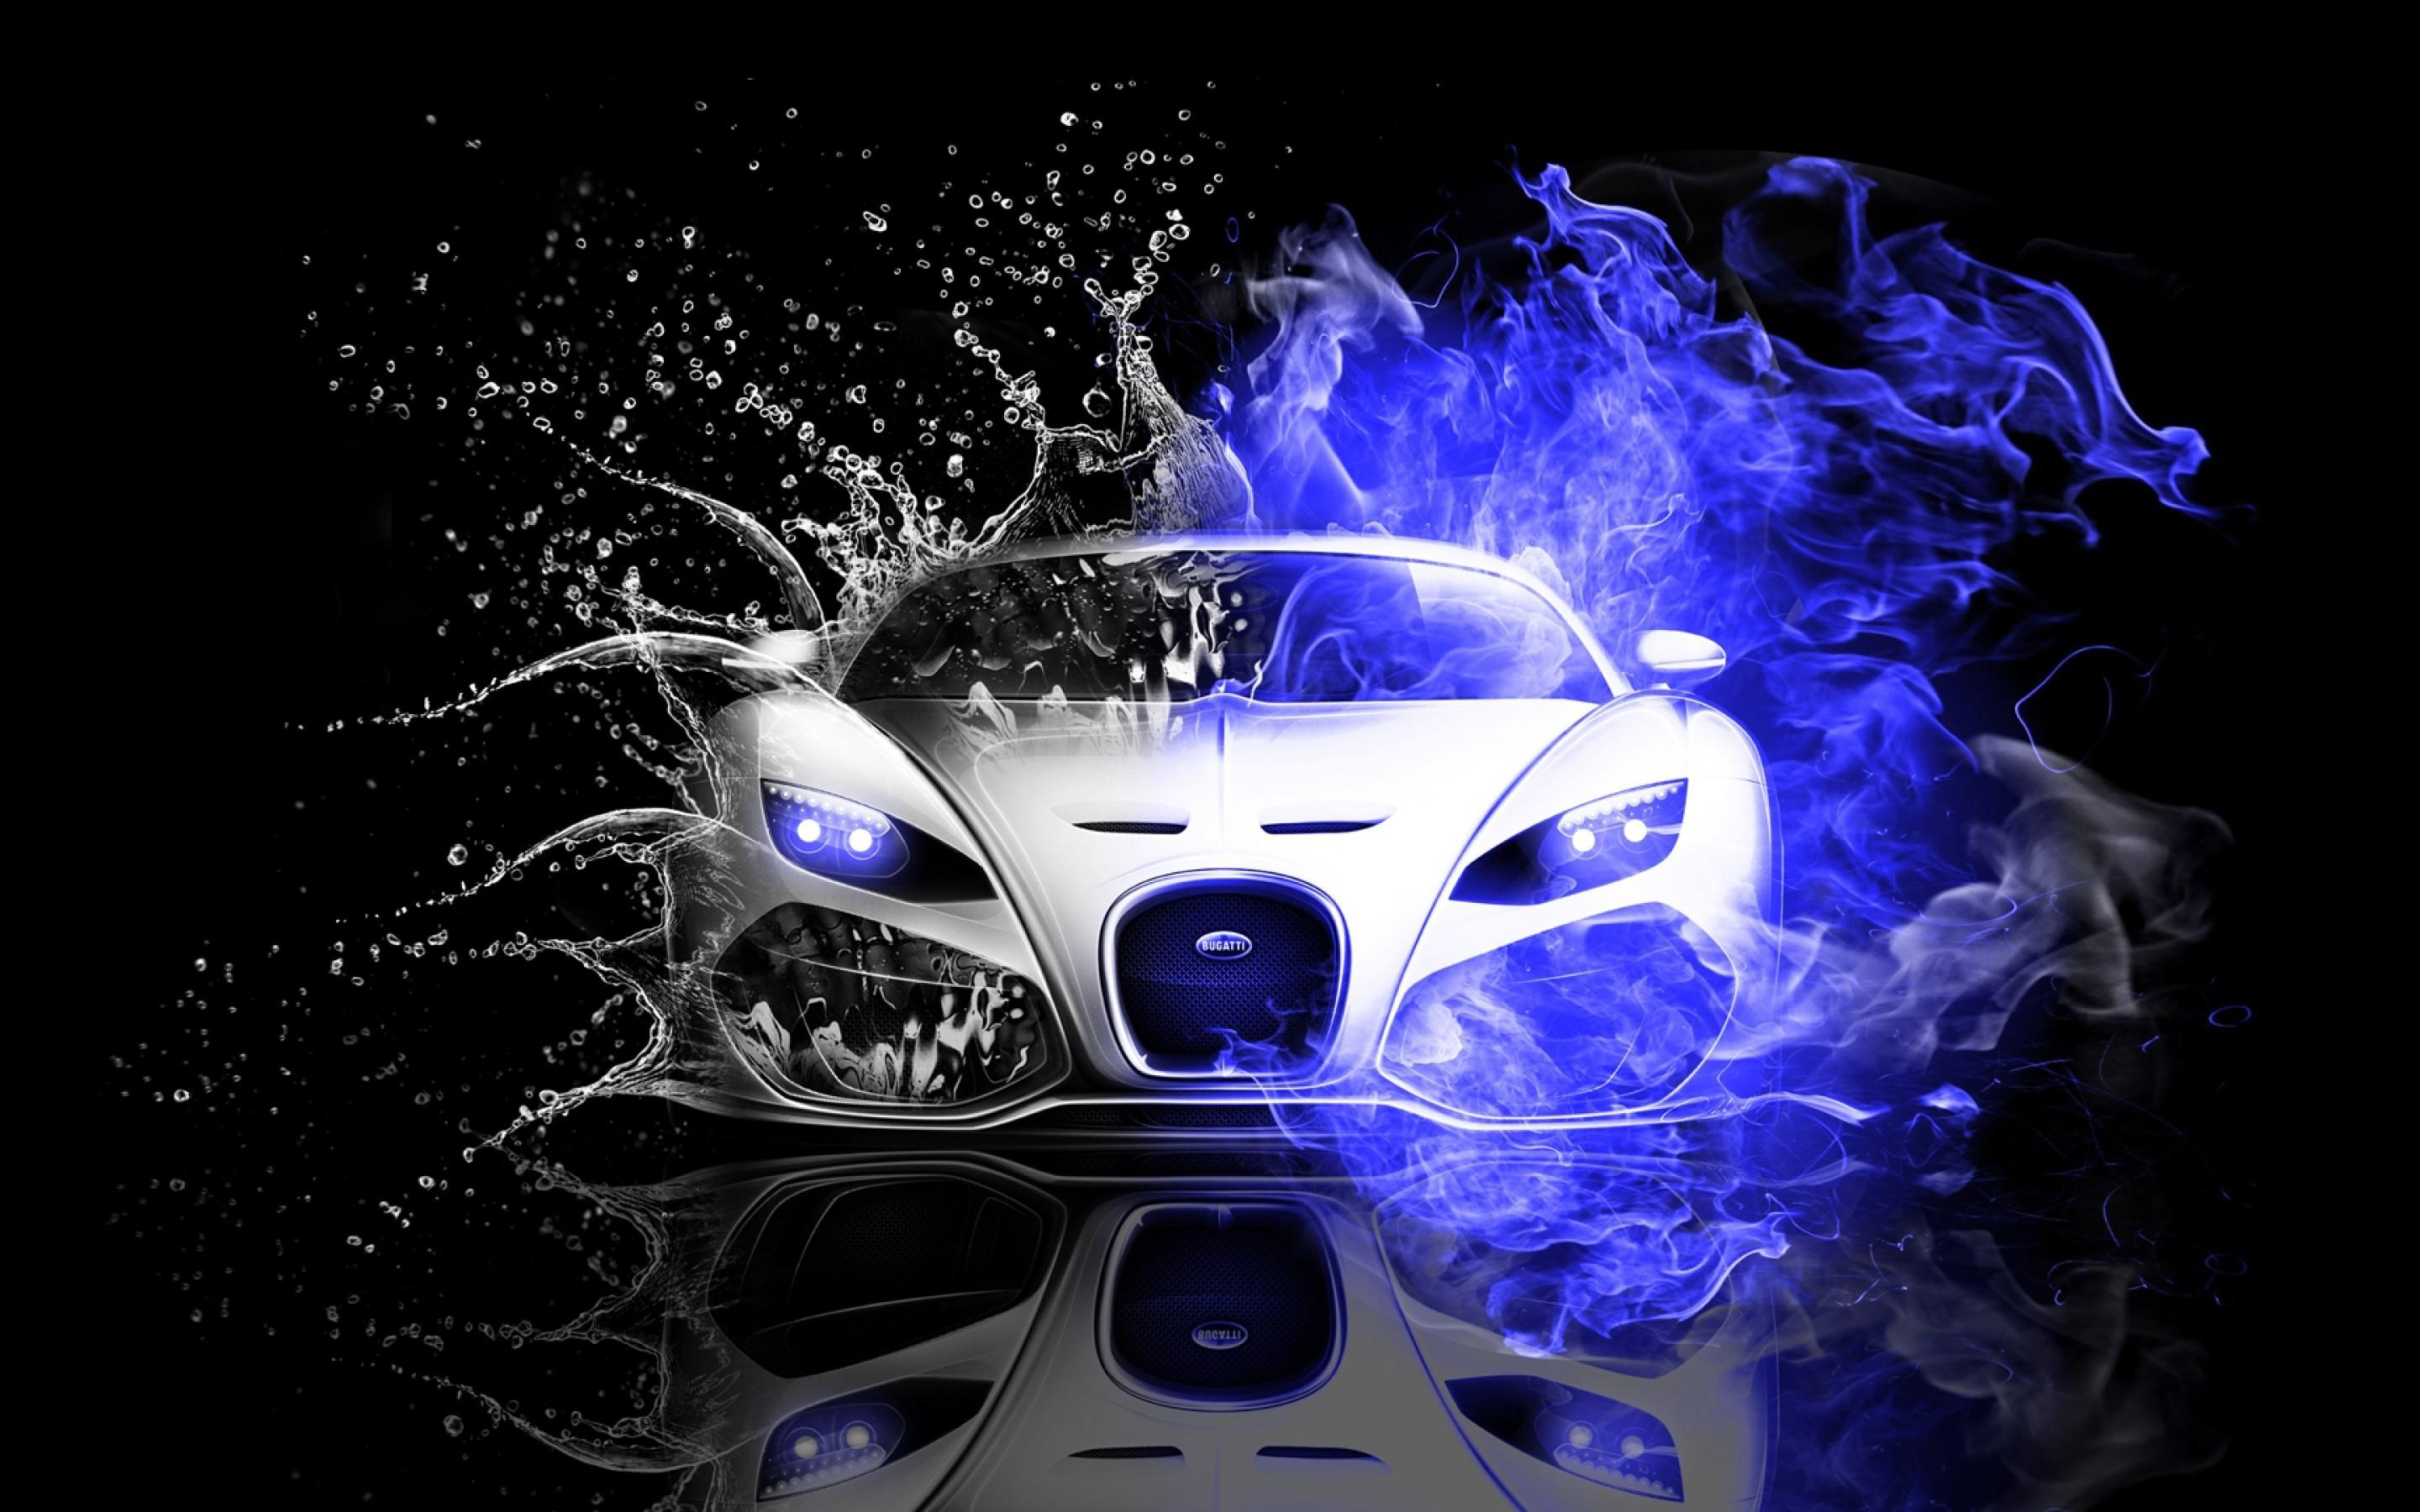 30 Awesome Sport Car Desktop Wallpapers Android Stock Wallpapers 2880x1800